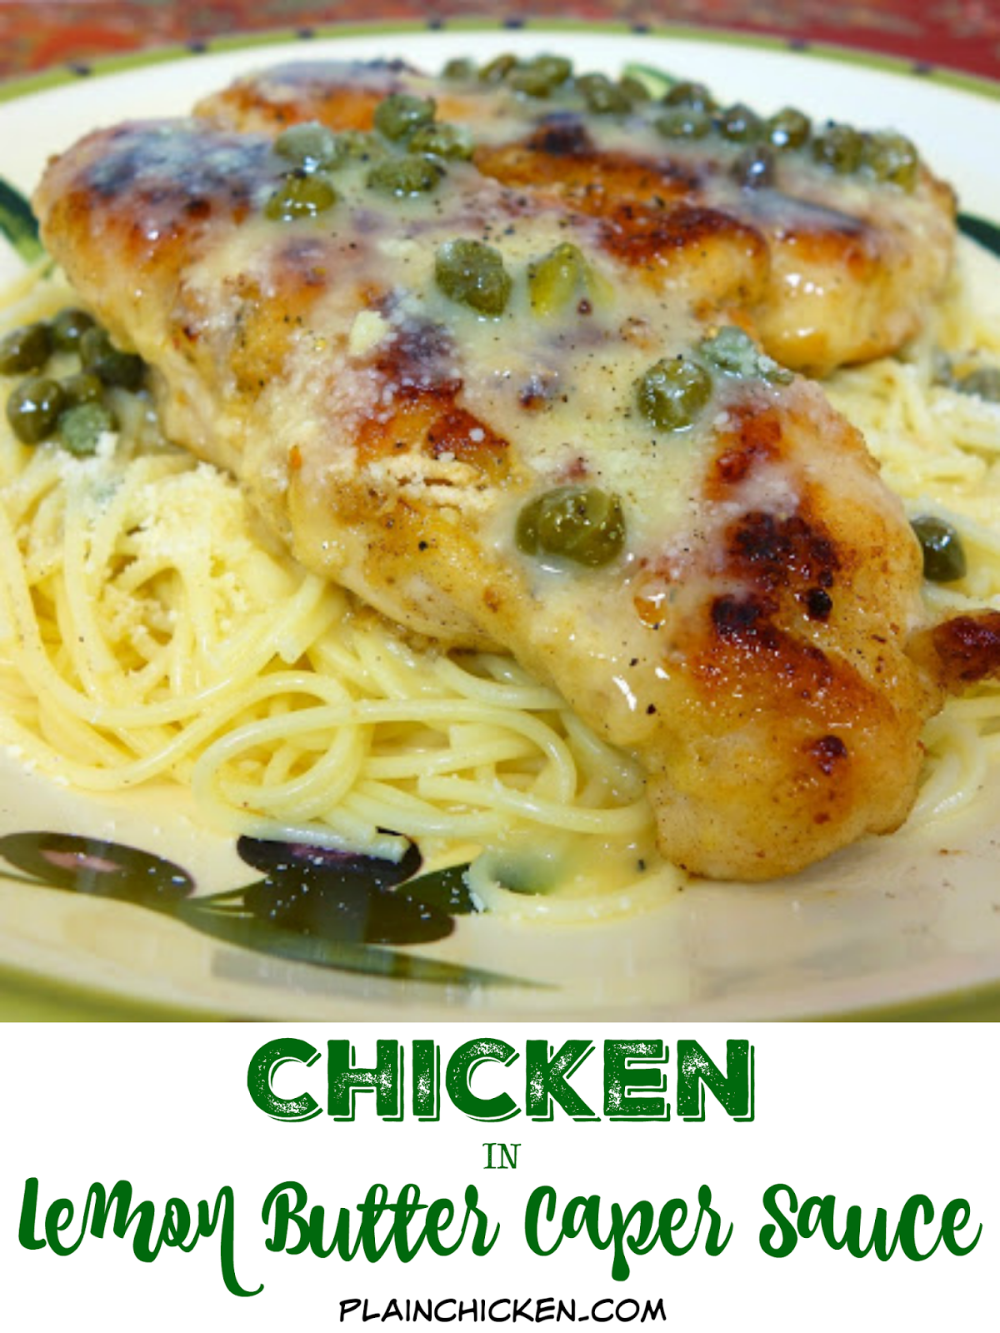 Chicken in Lemon Butter Caper Sauce - Plain Chicken